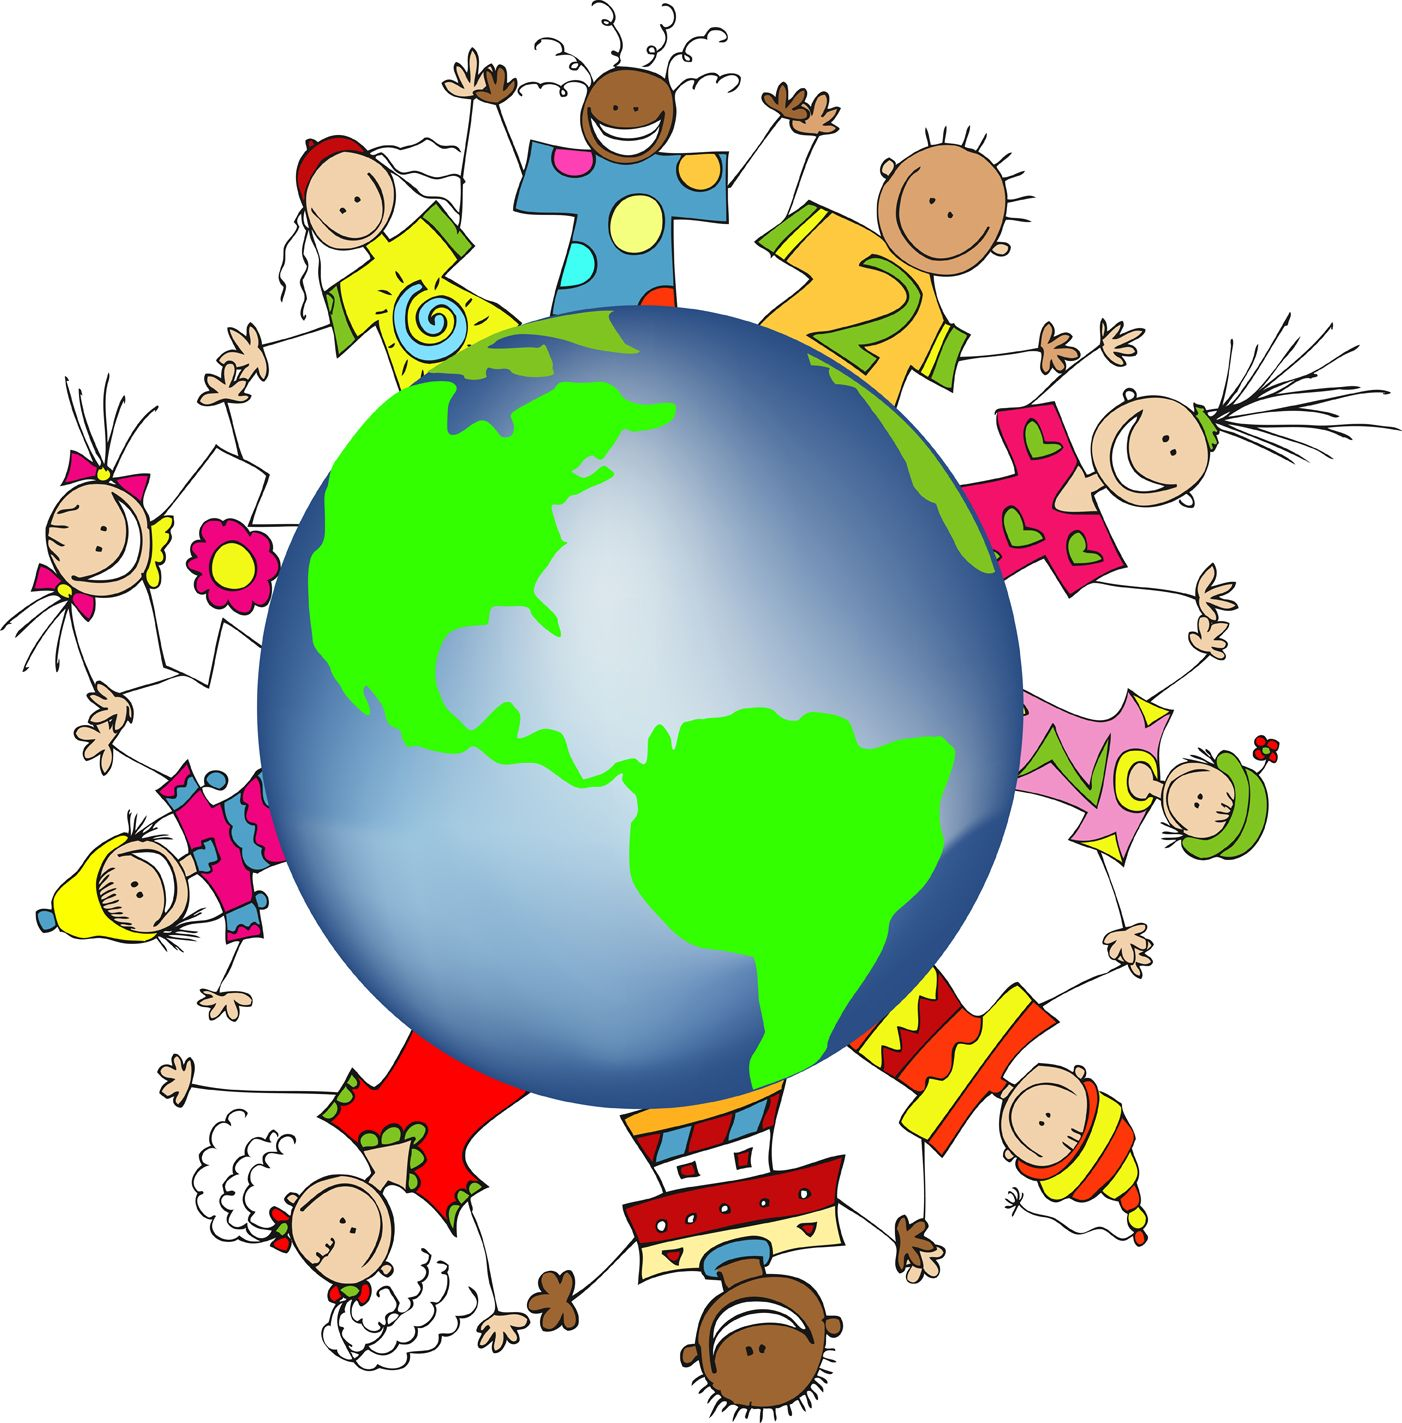 1402x1423 Kids World Hands Friends Networks Globe Illustration Small Free